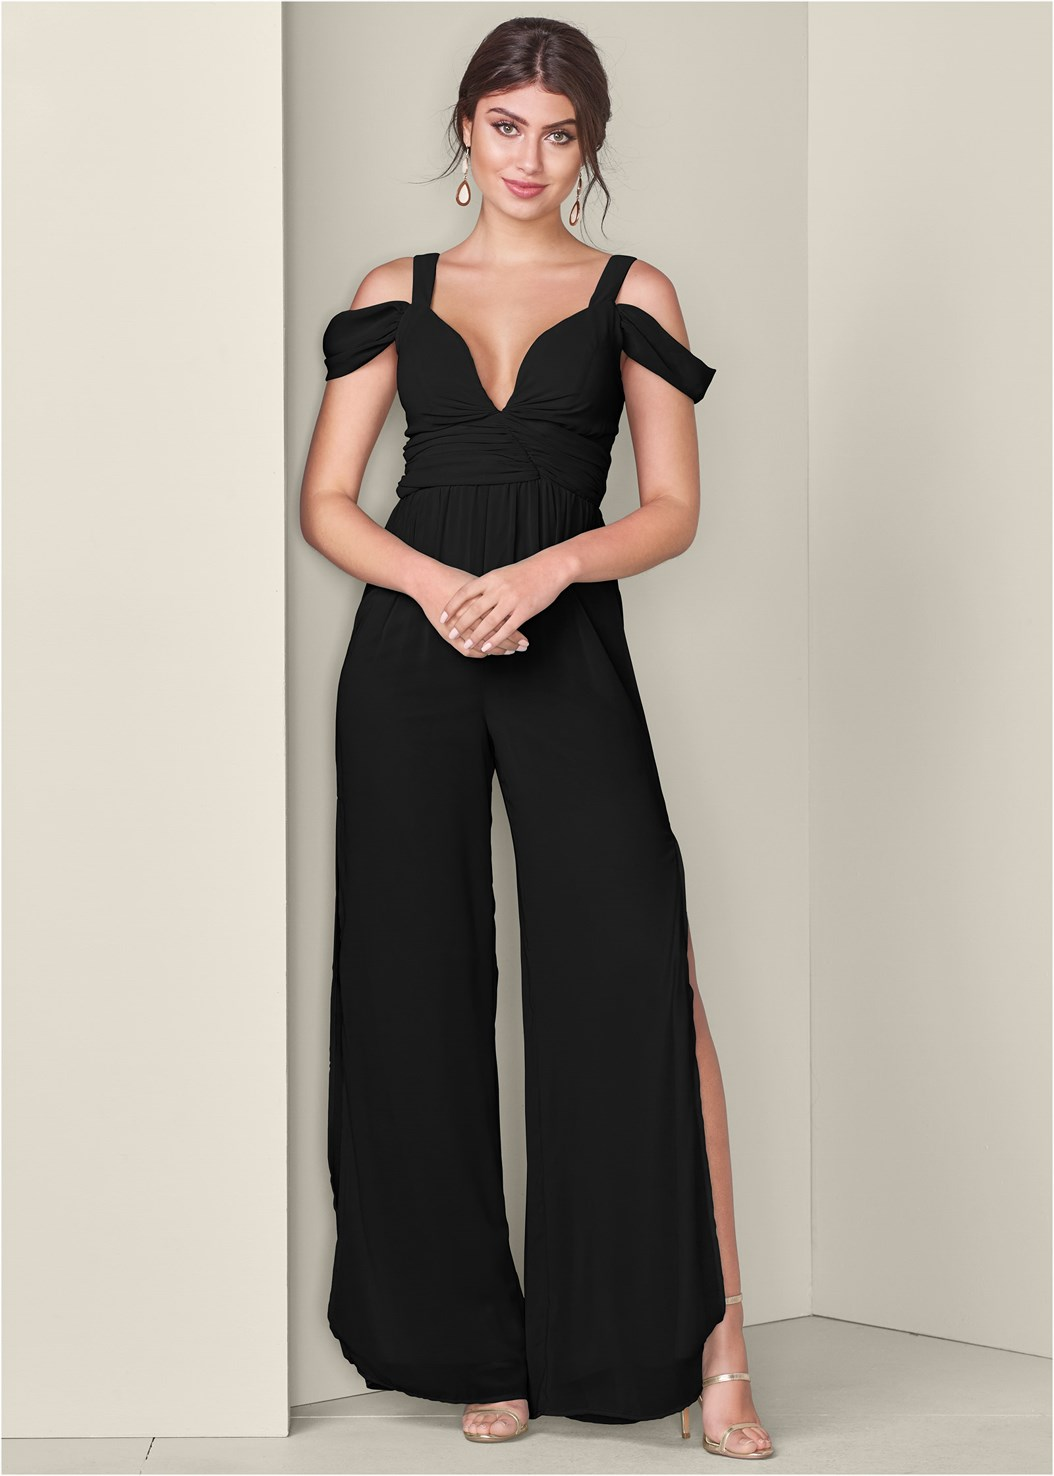 Cold Shoulder Jumpsuit,Cupid U Plunge Bra,High Heel Strappy Sandals